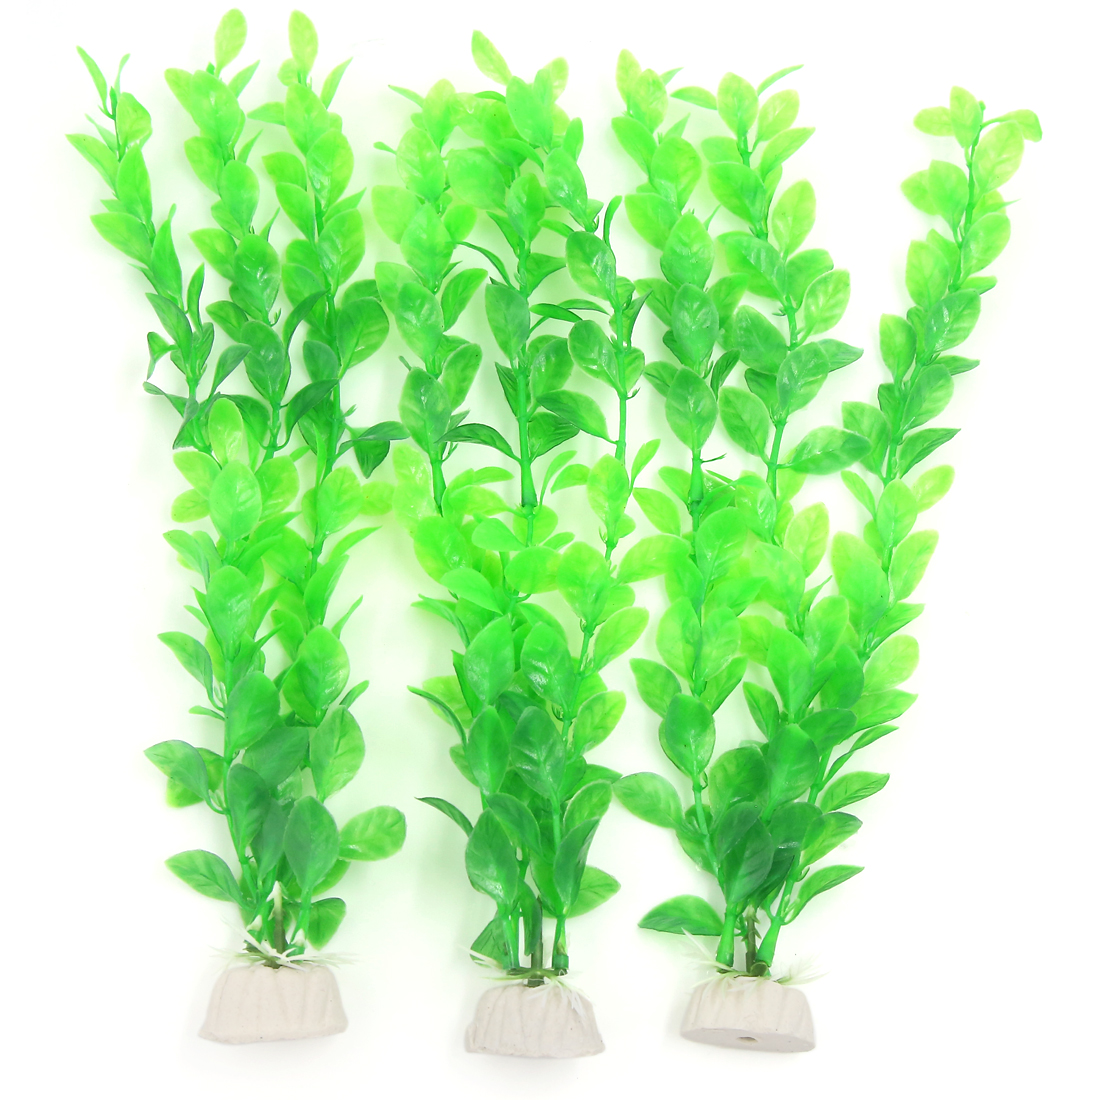 Unique Bargains Plastic Aquarium Plants with Ceramic Base, Green, 10.6-Inch, 3 Count by Unique Bargains